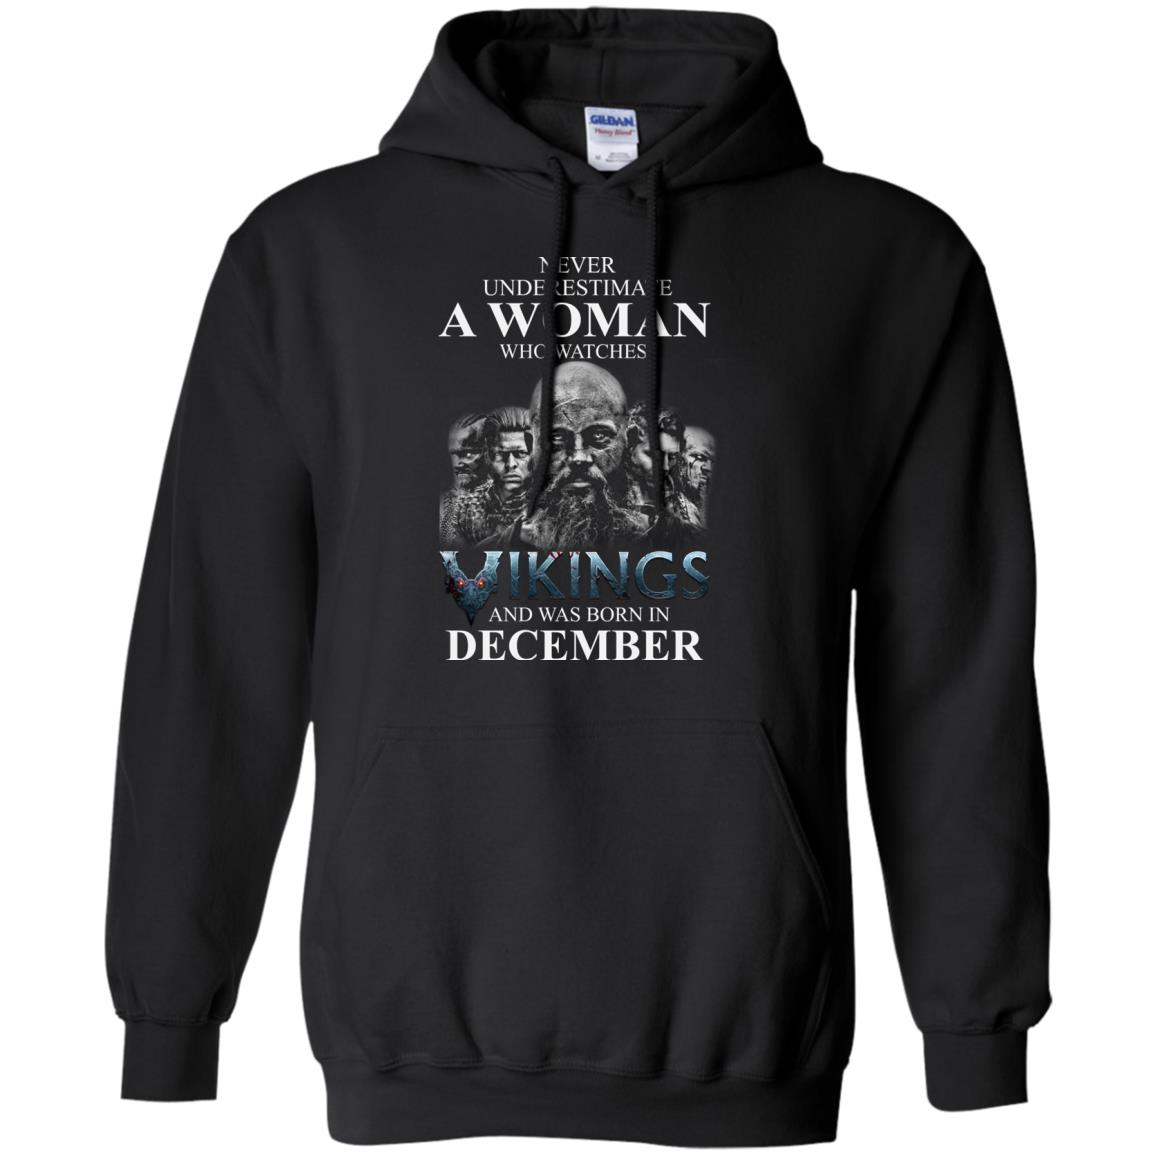 image 1223 - Never Underestimate A woman who watches Vikings and was born in December shirt